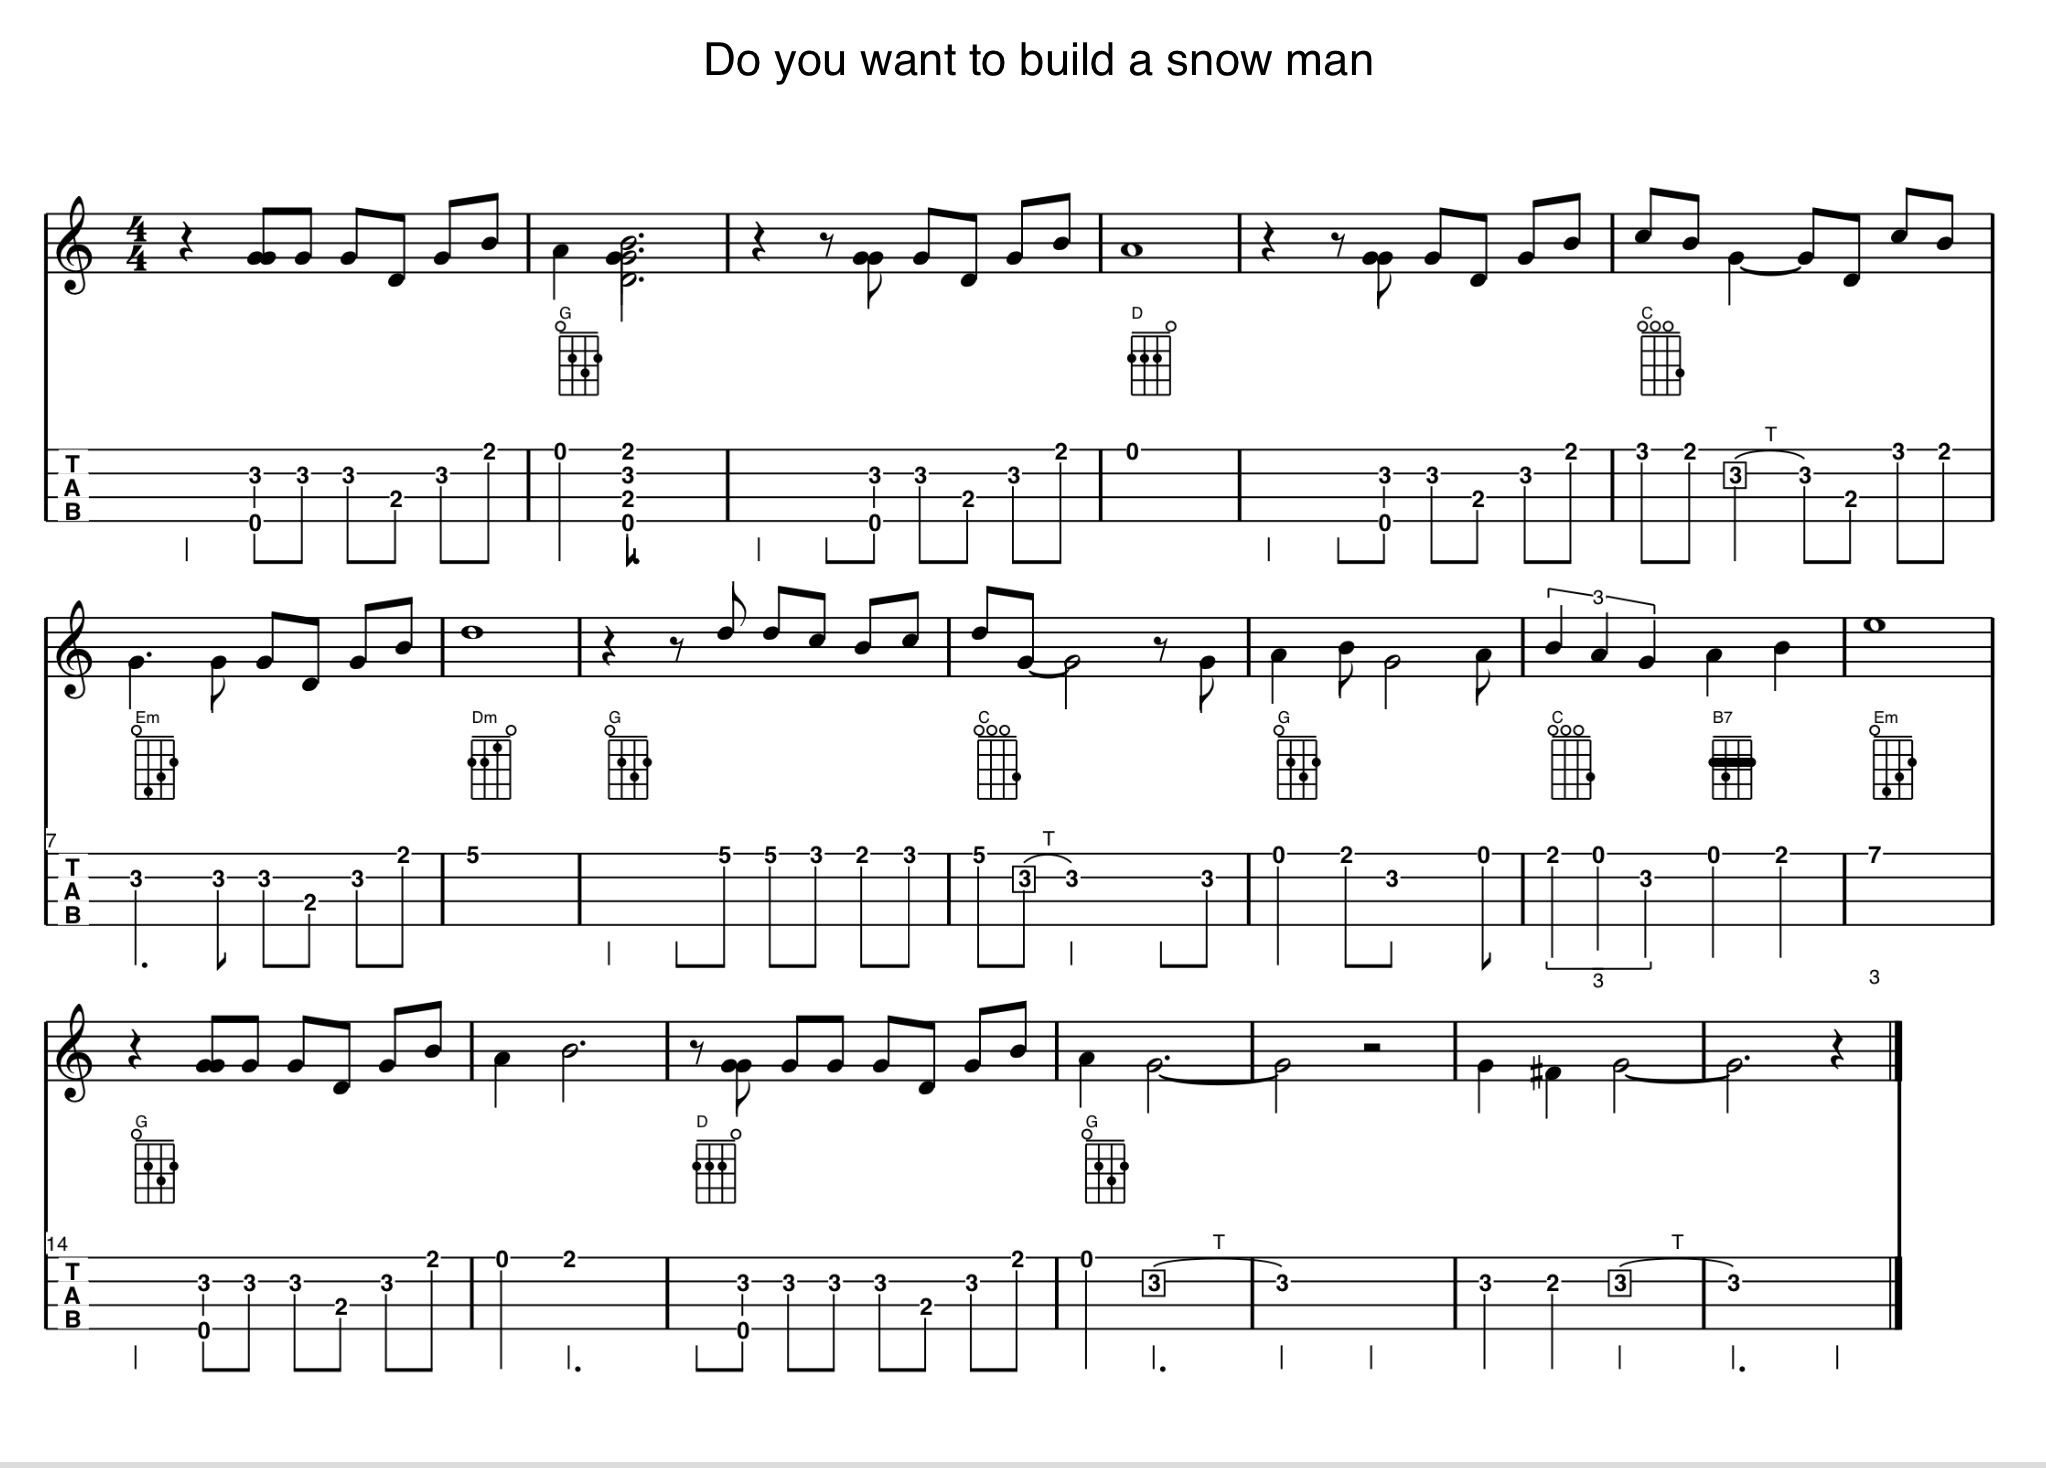 Ukulele Tab Do You Want To Build A Snow Man Ukulele Music